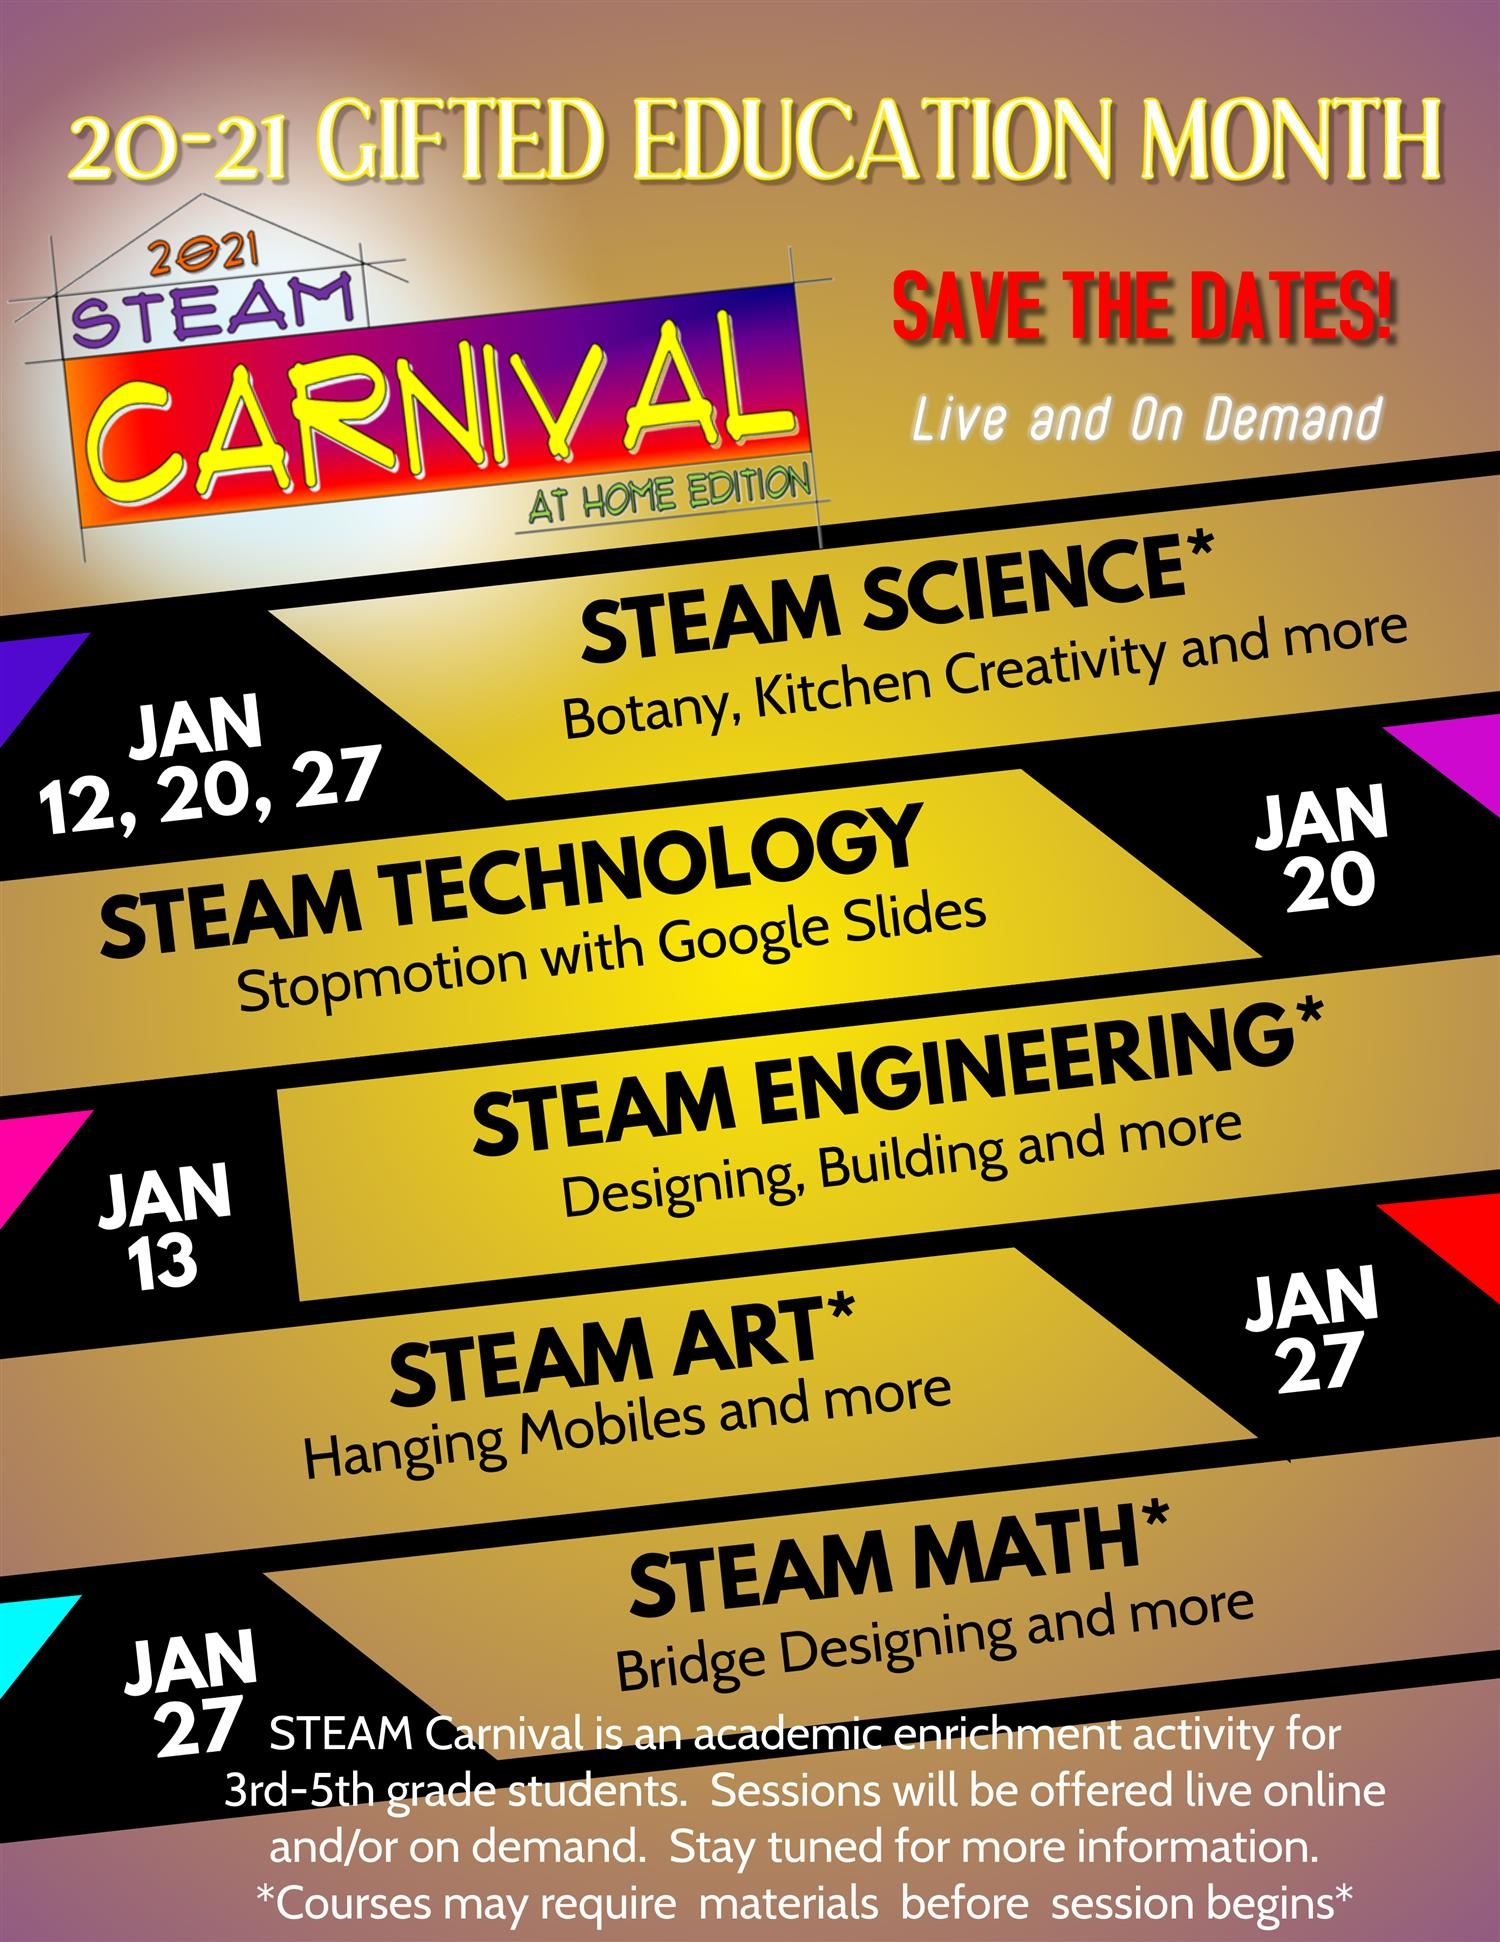 20-21 Steam Carnival Save the Date